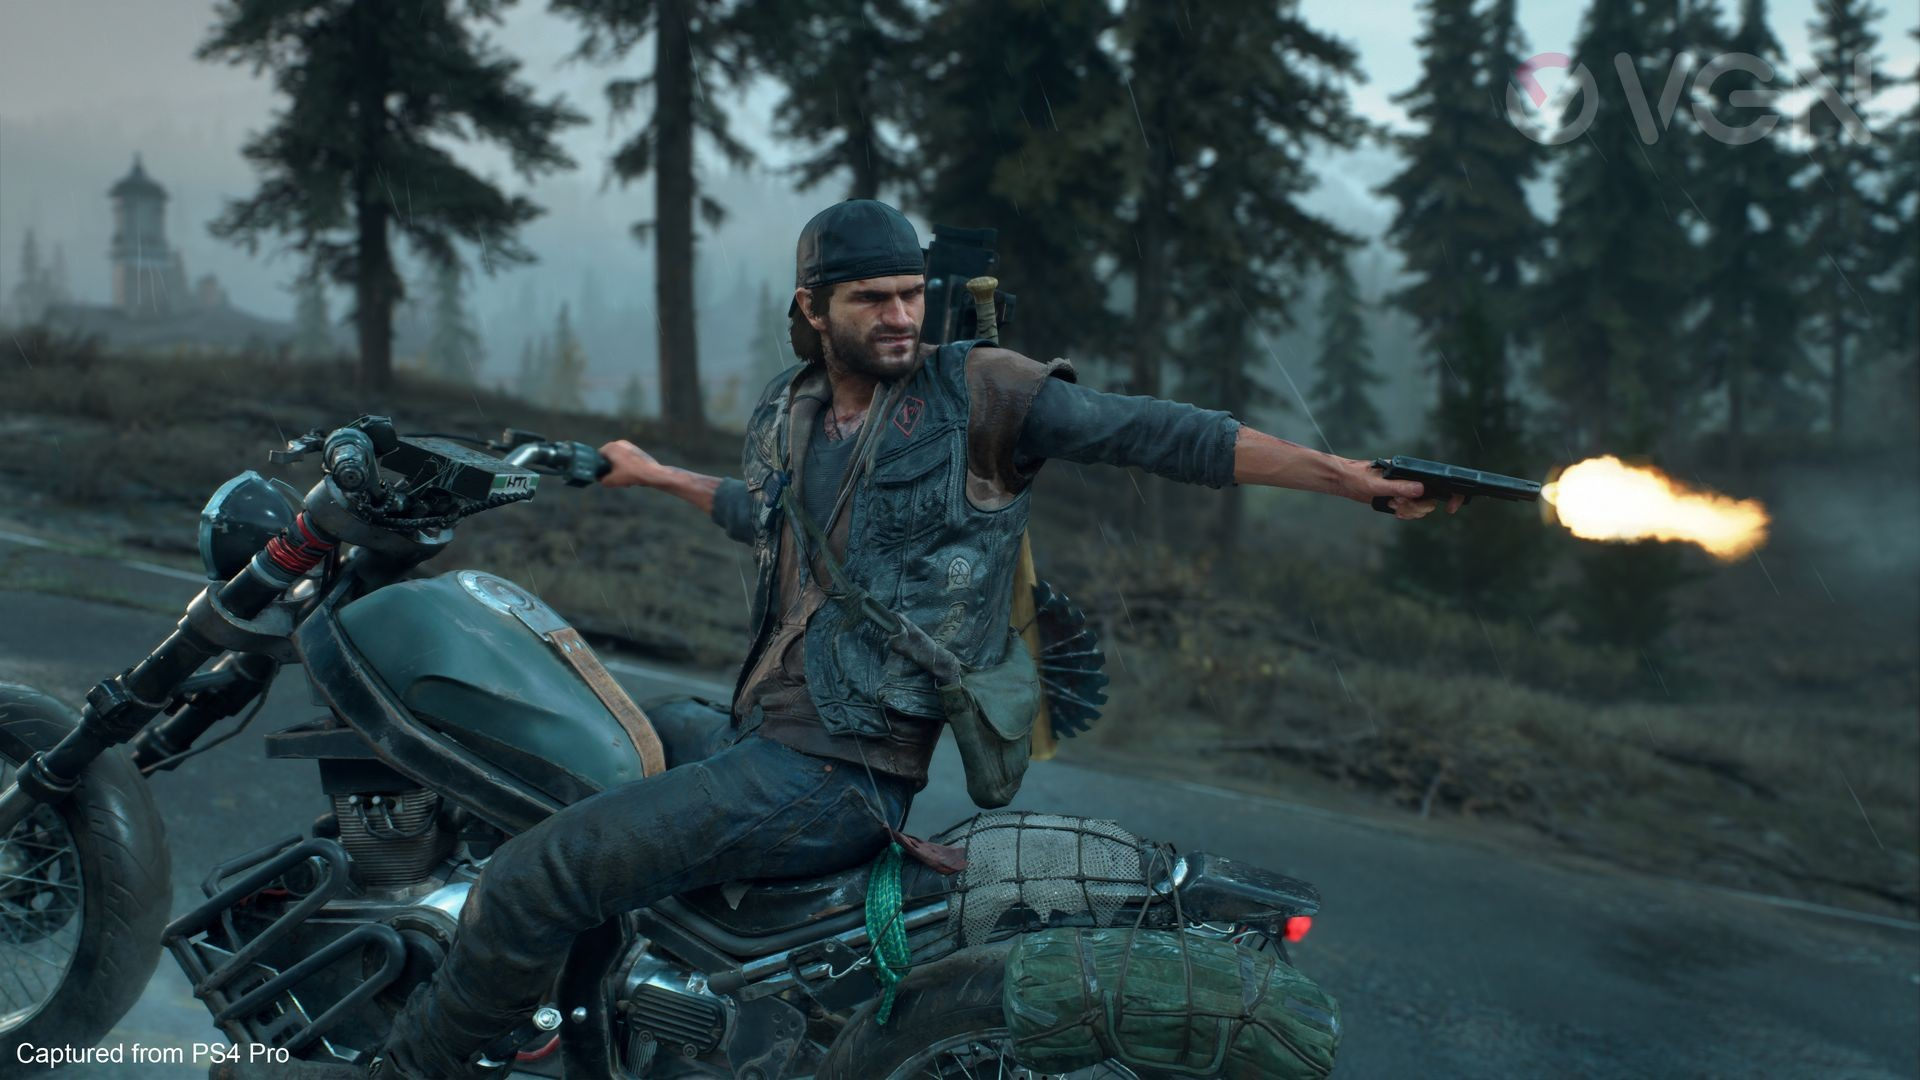 Days Gone Gameplay Sparatoria moto